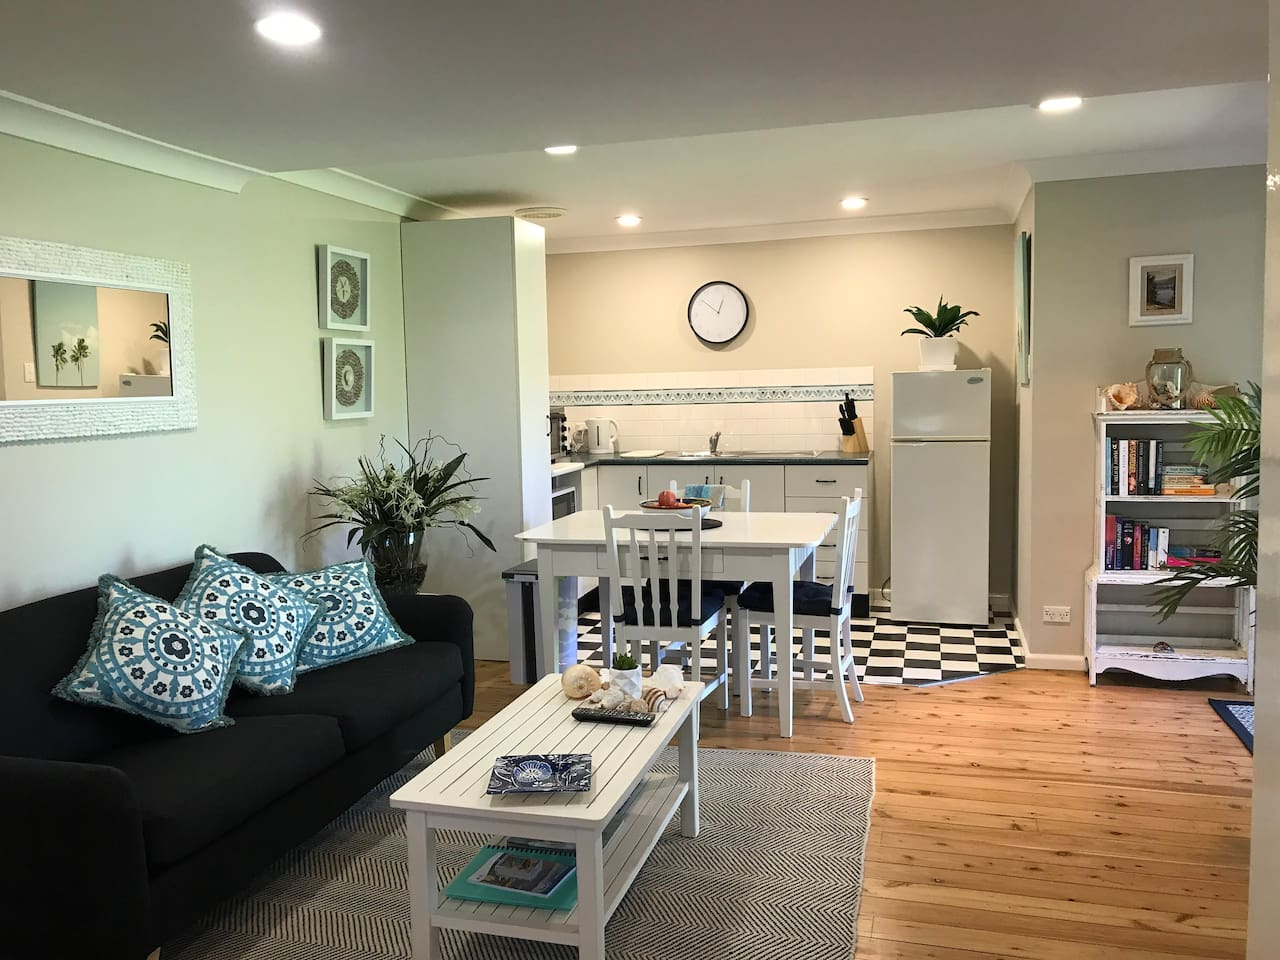 Beautifully styled with beach theme flowing throughout the apartment. This is a view of the open plan kitchen and living space. Large flat screen tv (not seen in this photo) free wifi